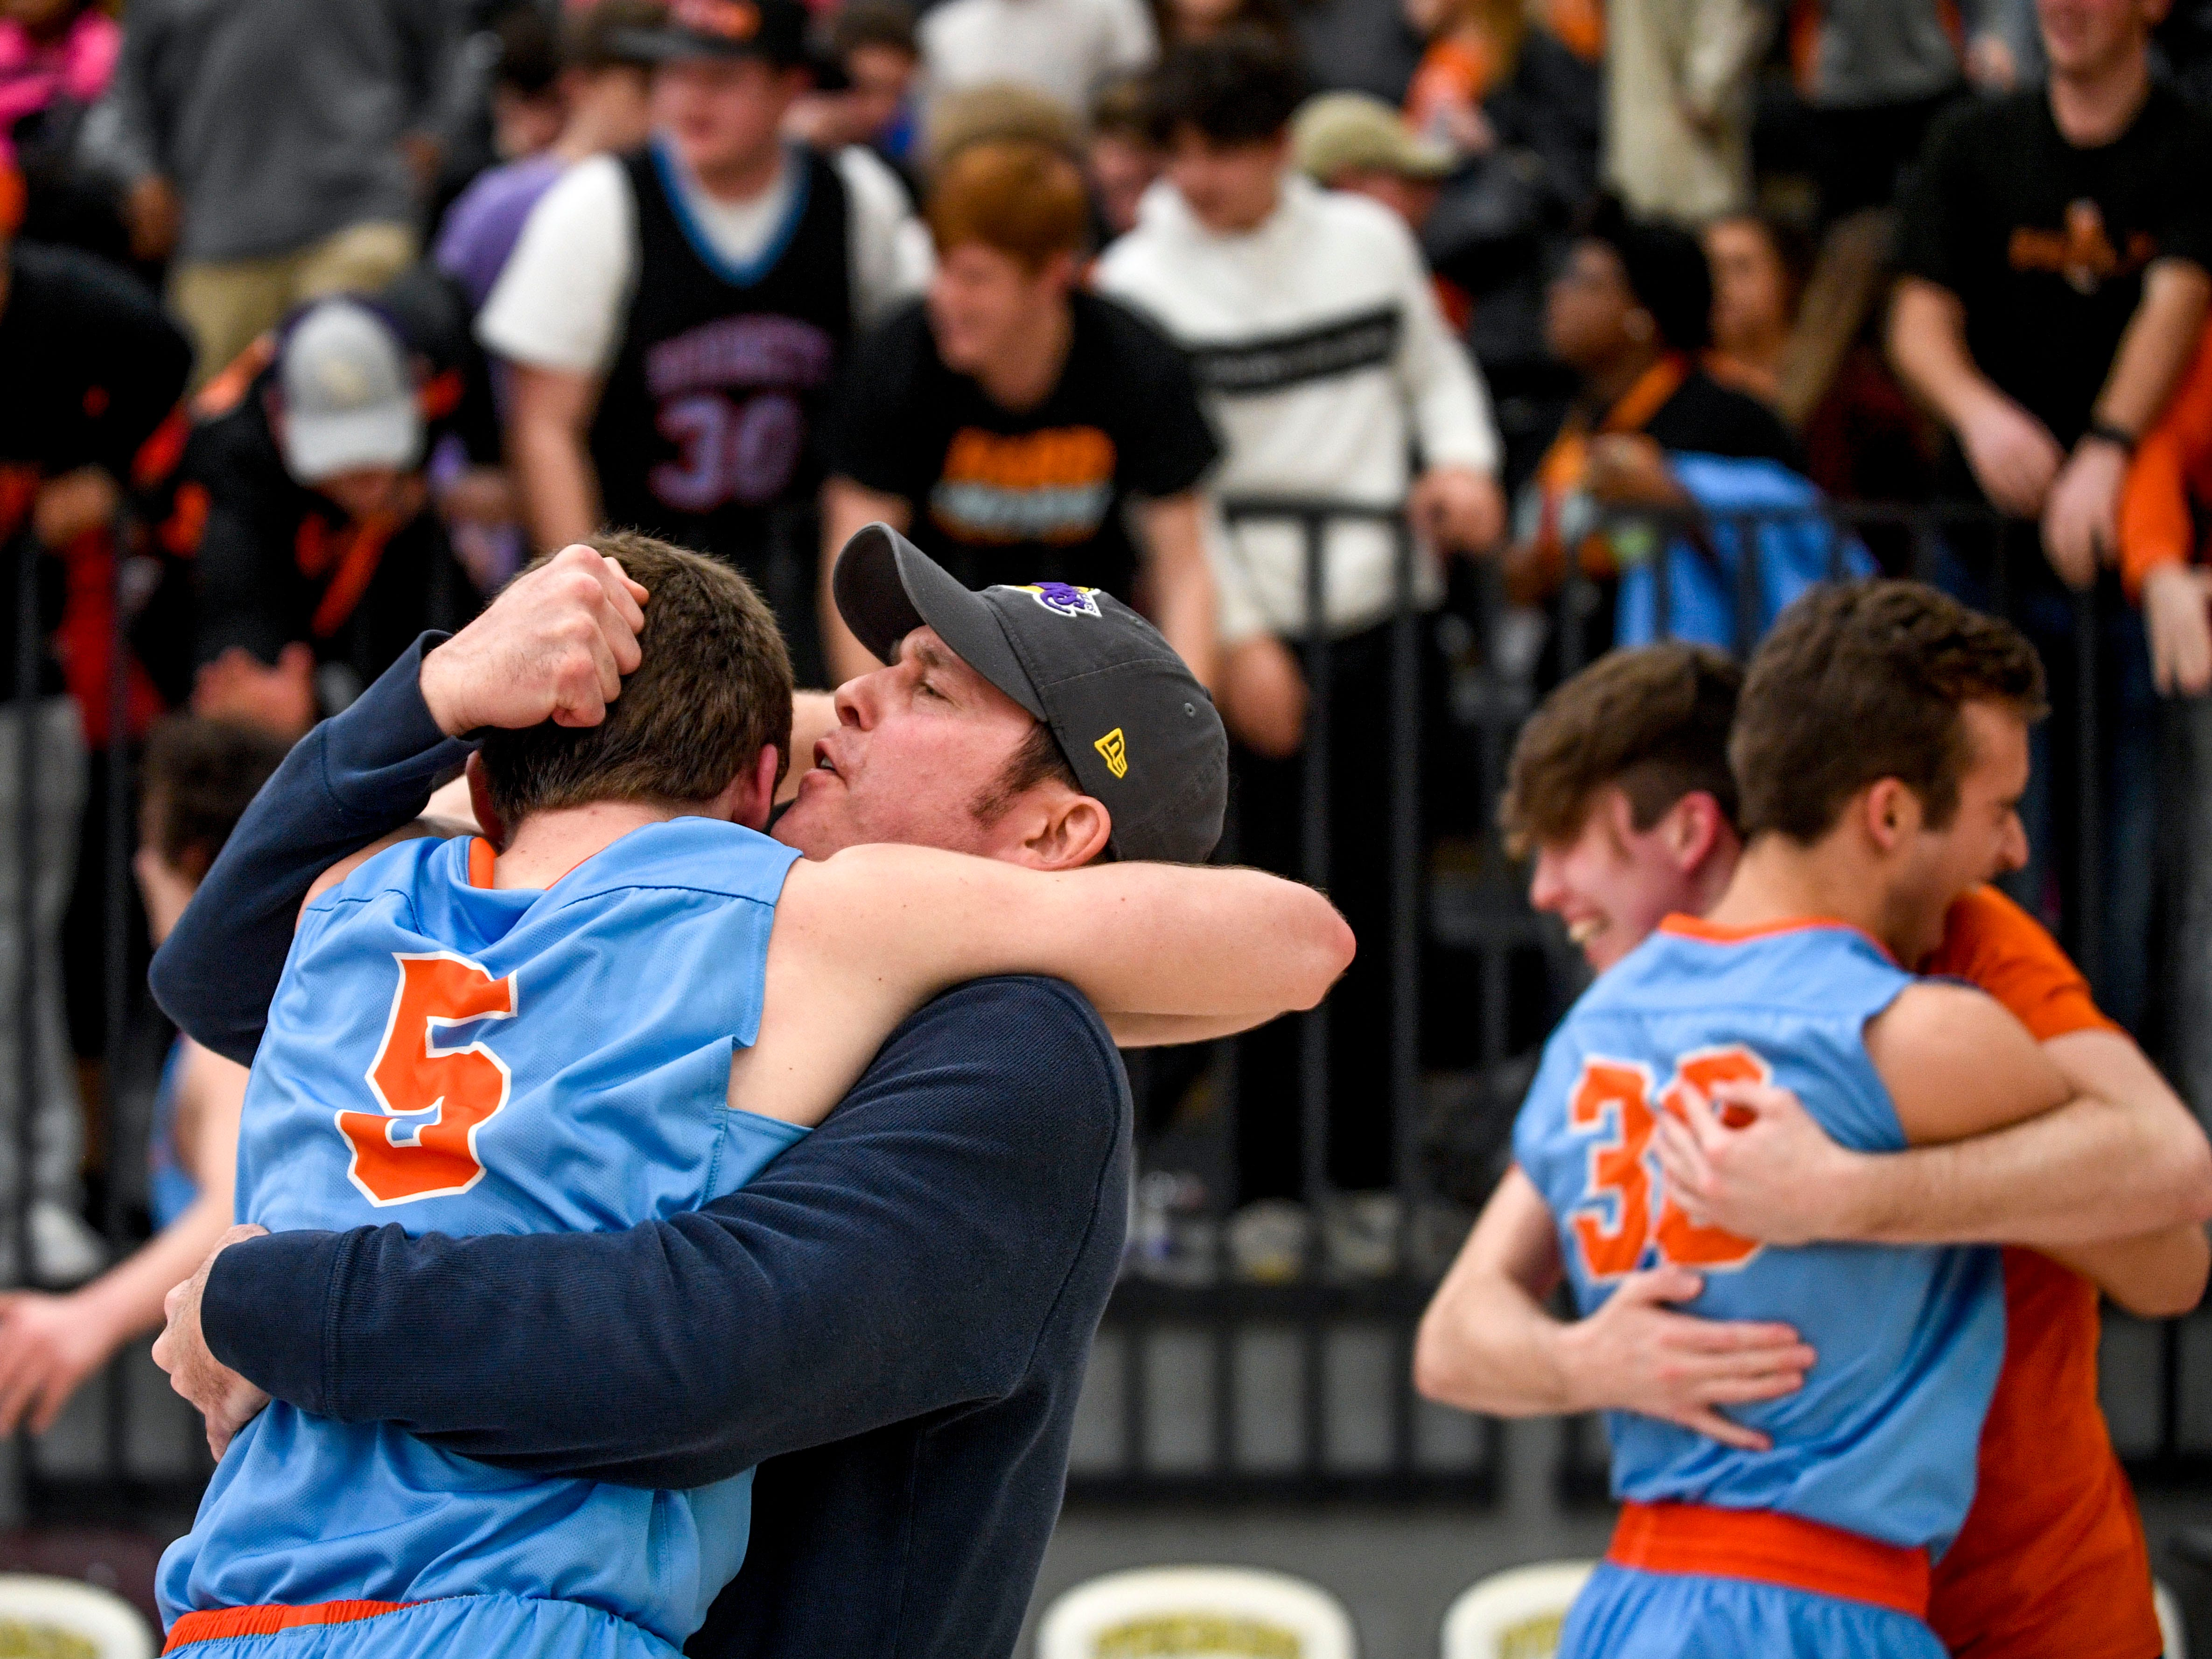 David Hicks whispers in his son's ear while celebrating with his son, Nathan Hicks (5) after the buzzer in the TSSAA Region 7-AA semifinal game between South Side and South Gibson after an upset result at Dyersburg High School, in Dyersburg, Tenn., on Tuesday, Feb. 26, 2019.